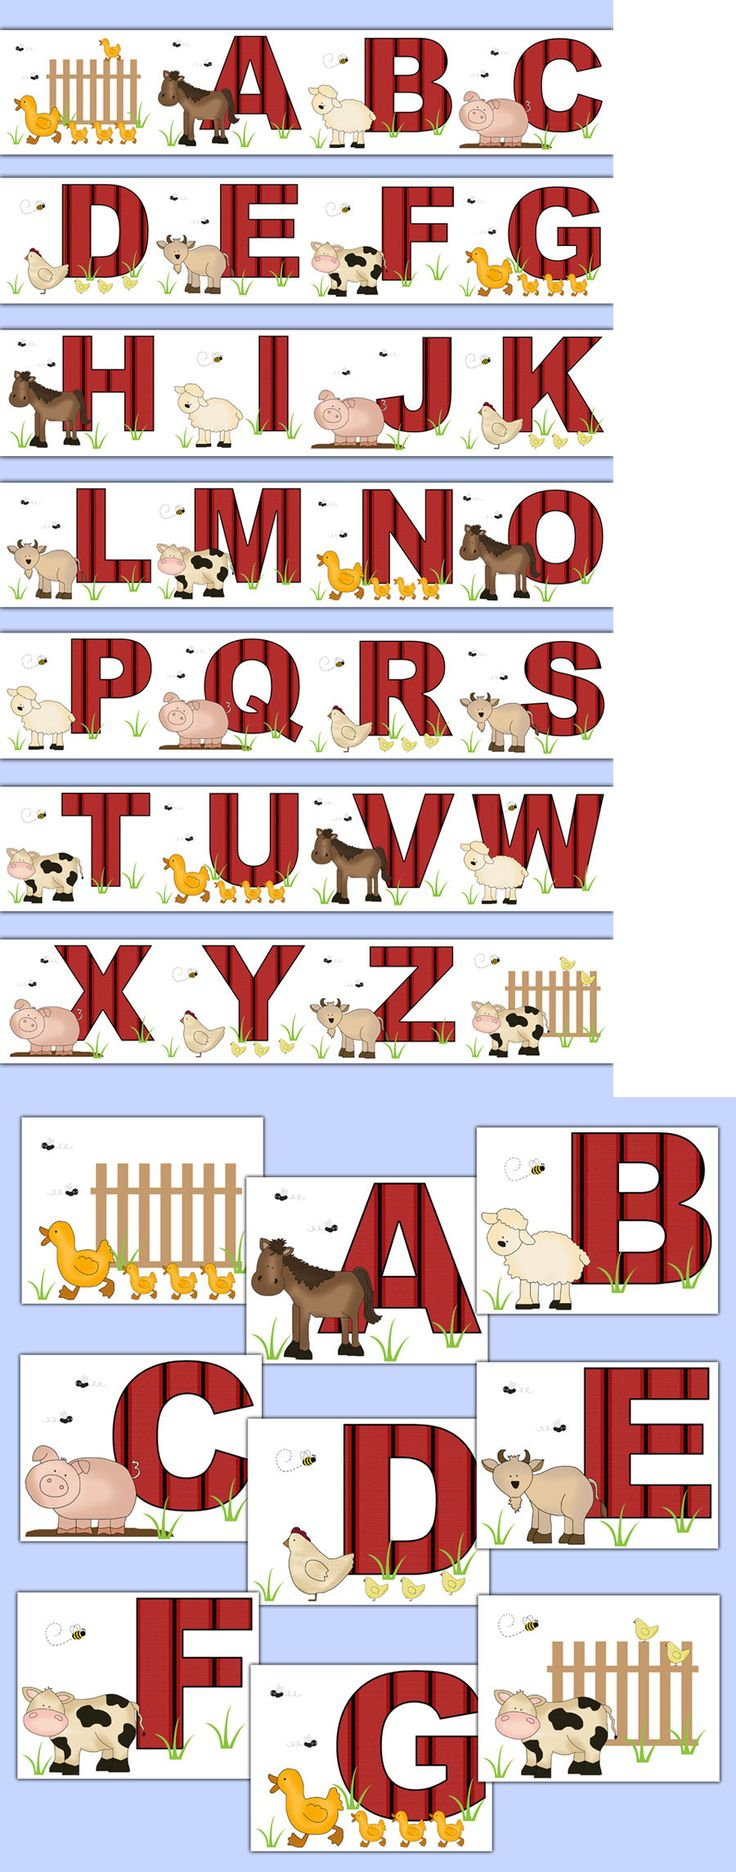 Wallpaper Borders 37636: Farm Barnyard Animal Alphabet Wallpaper Border Wall Art Decals Nursery Stickers -> BUY IT NOW ONLY: $40 on eBay!